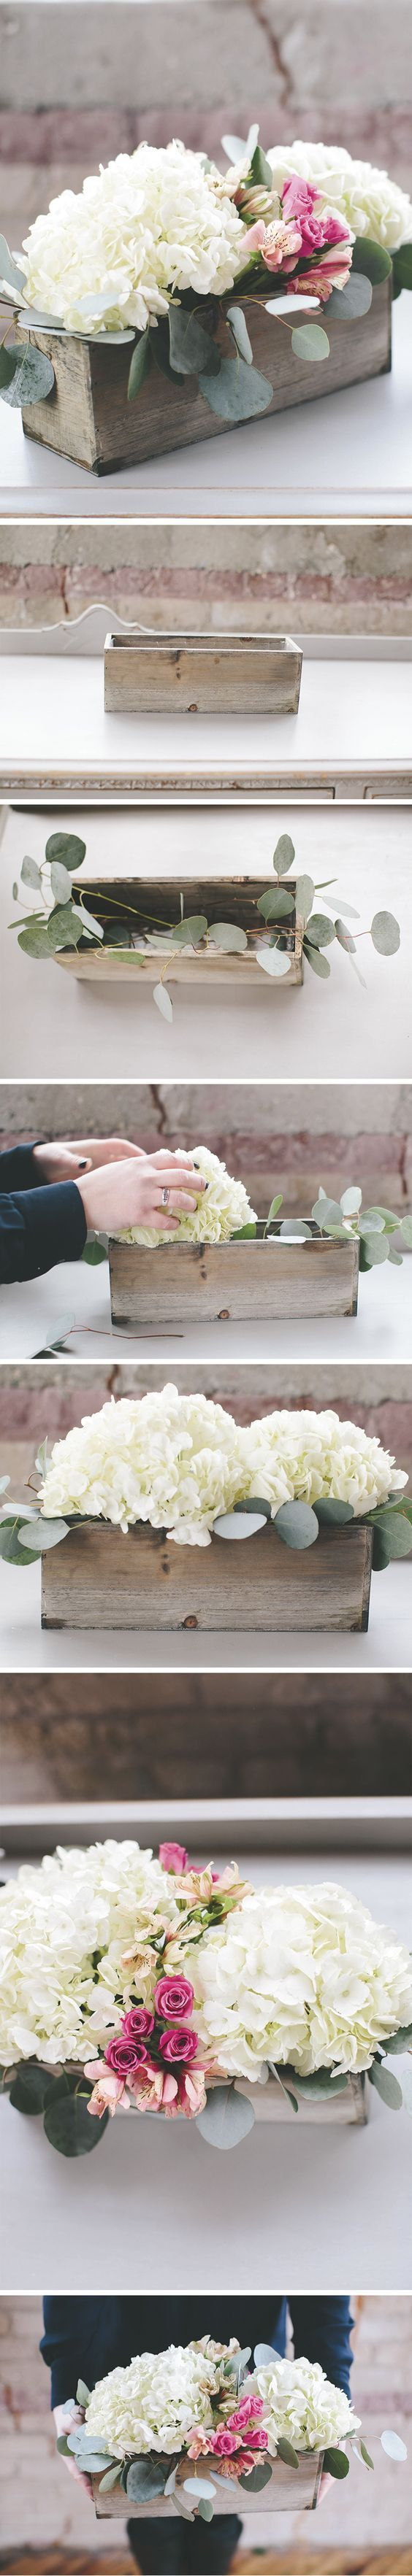 //A Modern DIY Hydrangea Wedding Centerpiece / http://www.himisspuff.com/diy-wedding-centerpieces-on-a-budget/